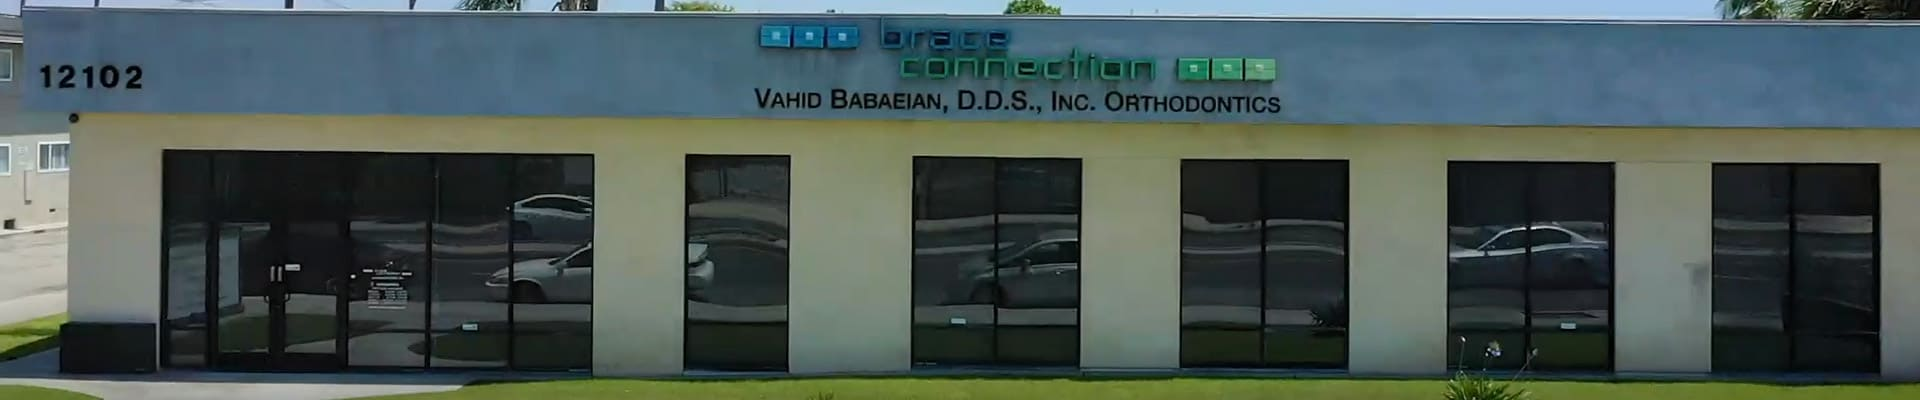 Office location at Brace Connection in Downey, CA